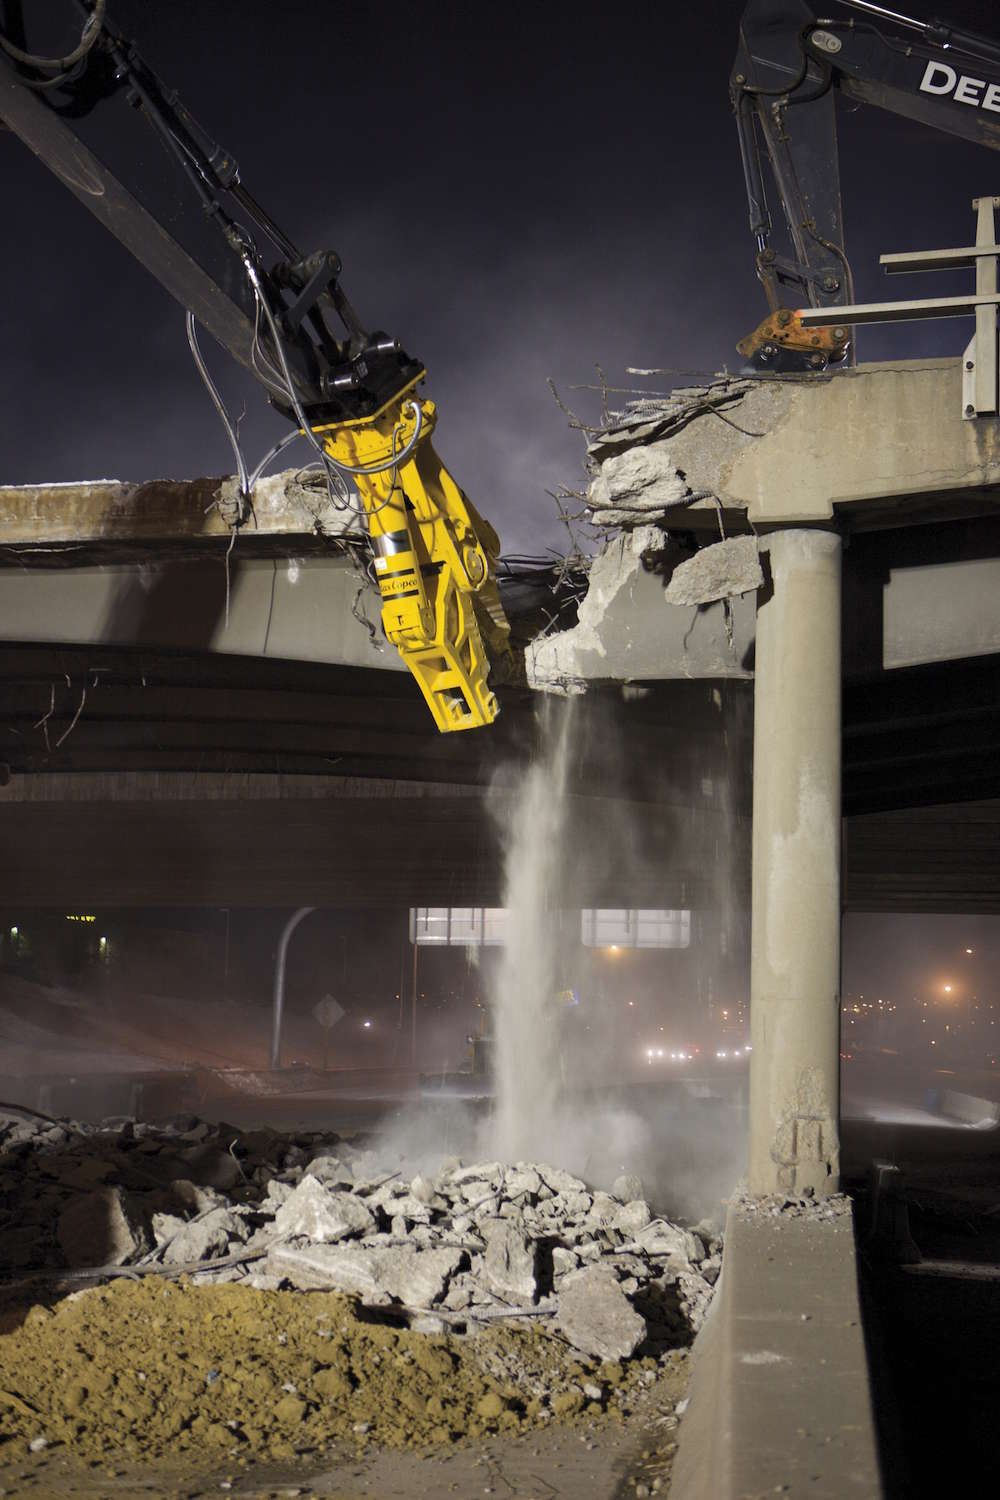 Atlas Copco's CC Combi Cutter hydraulic attachments maximize operator productivity by rotating 360 degrees. The crushing or cutting power comes from two powerful hydraulic cylinders above the jaws.